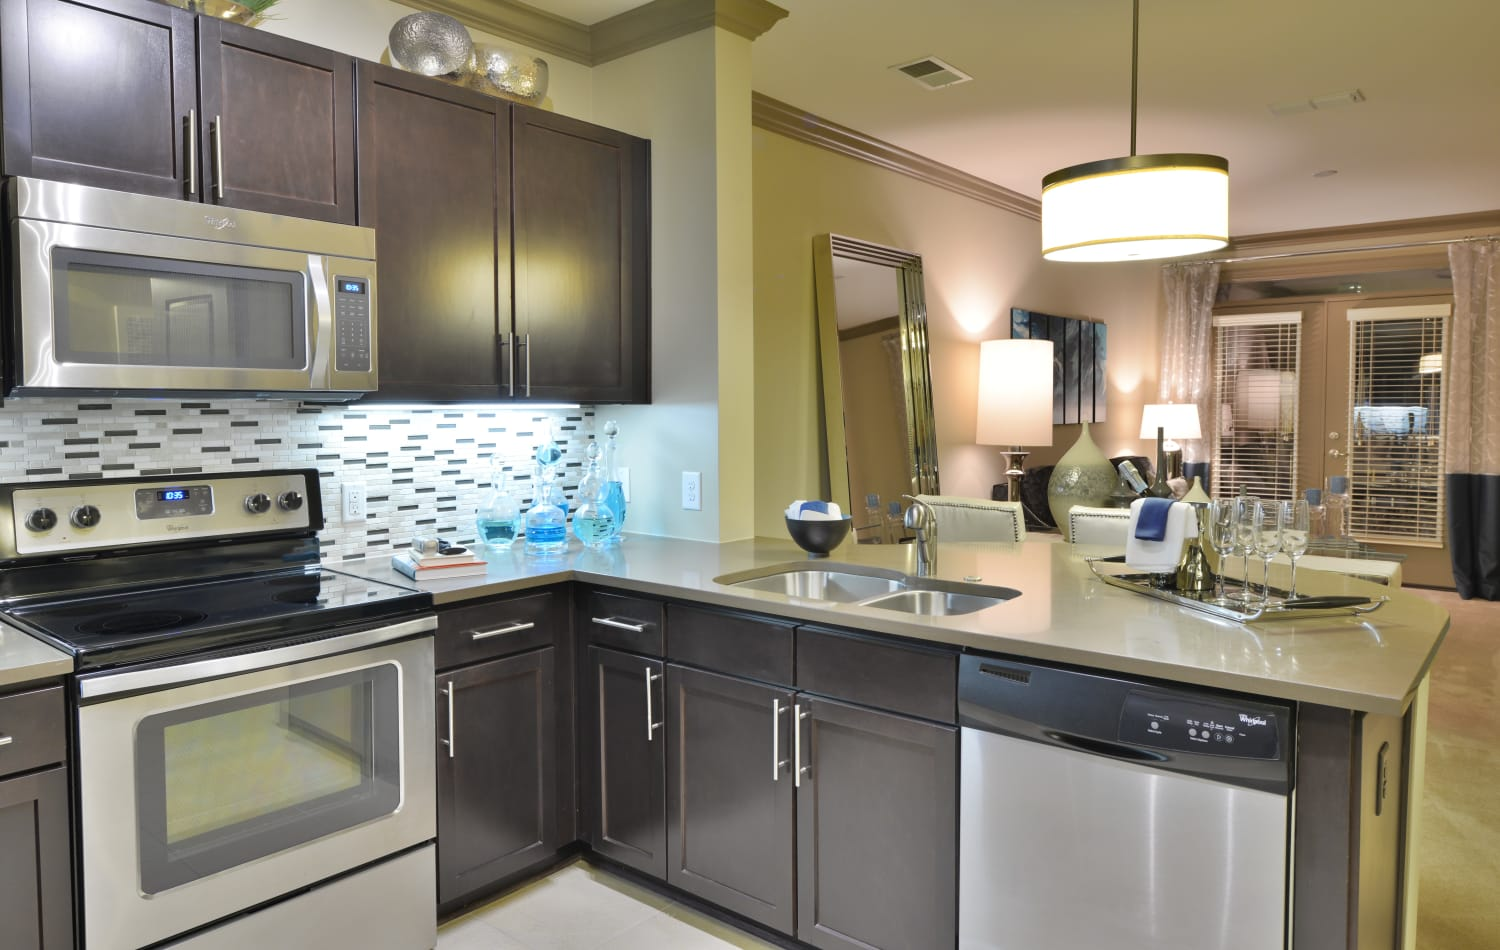 Beautifully designed kitchen with dark wood cabinets and stainless-steel appliances at Emory Point